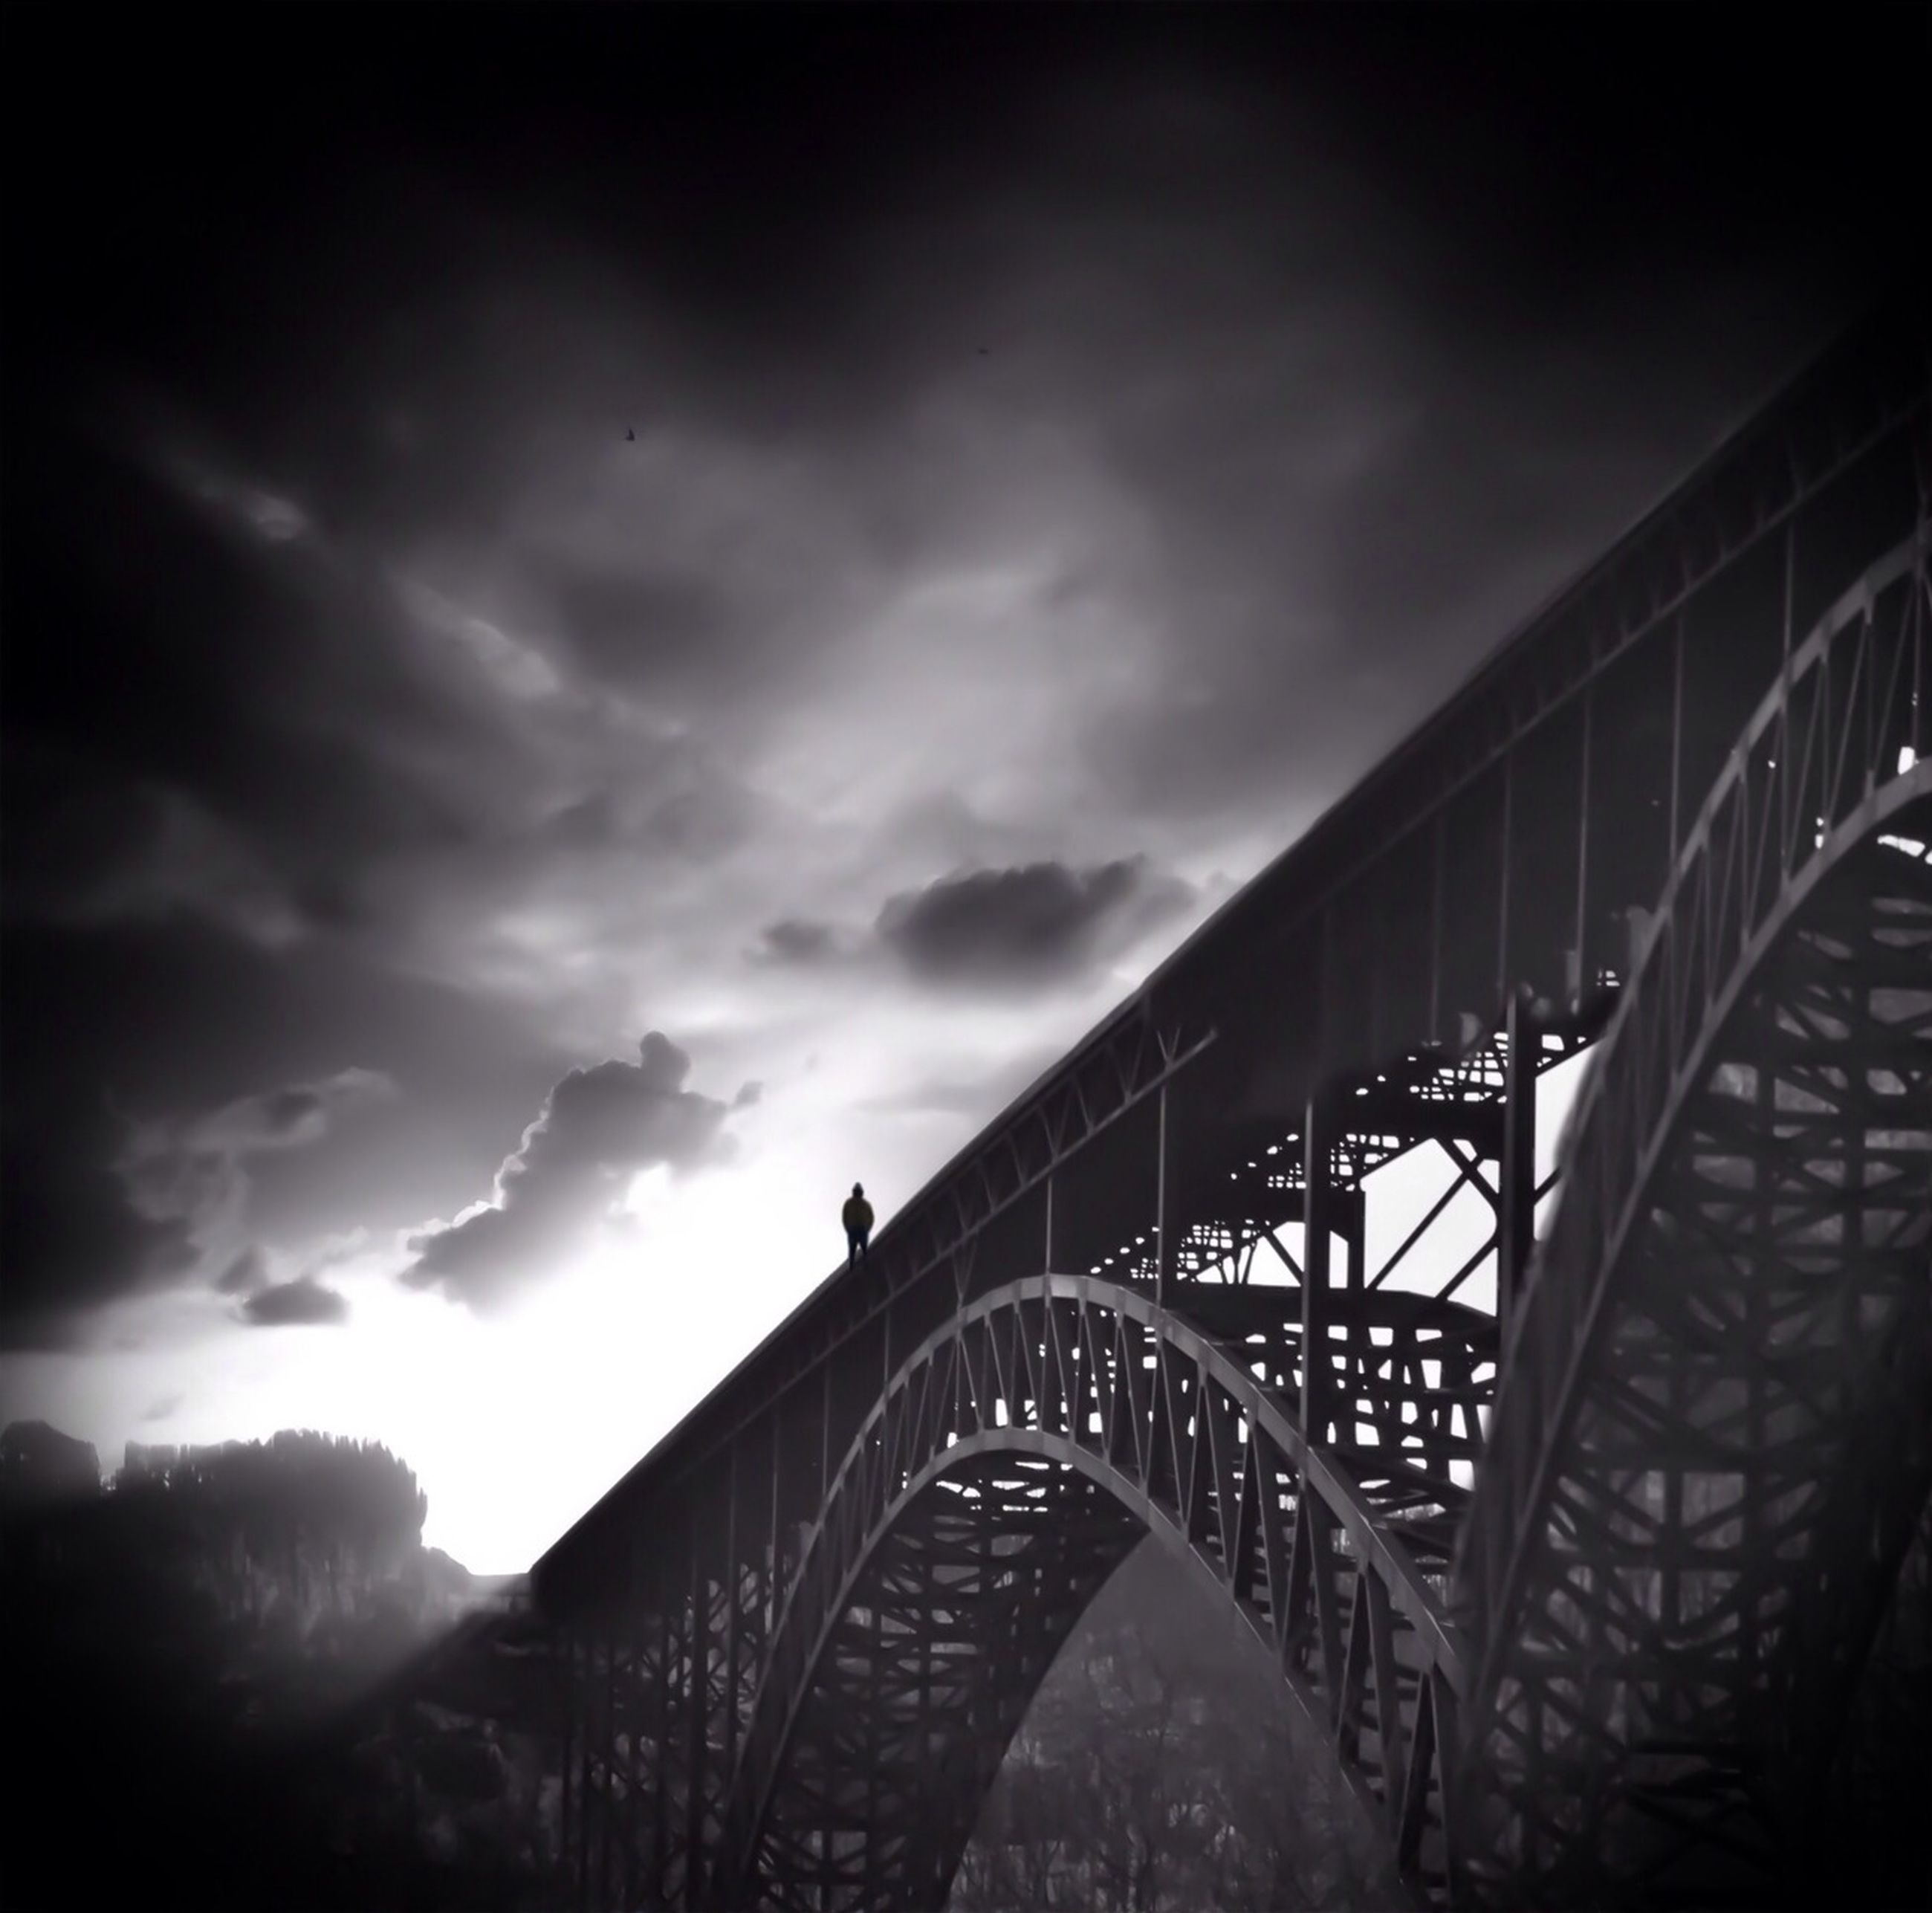 sky, built structure, architecture, bridge - man made structure, cloud - sky, low angle view, connection, transportation, cloudy, engineering, cloud, bridge, railing, silhouette, dusk, outdoors, overcast, railway bridge, day, metal